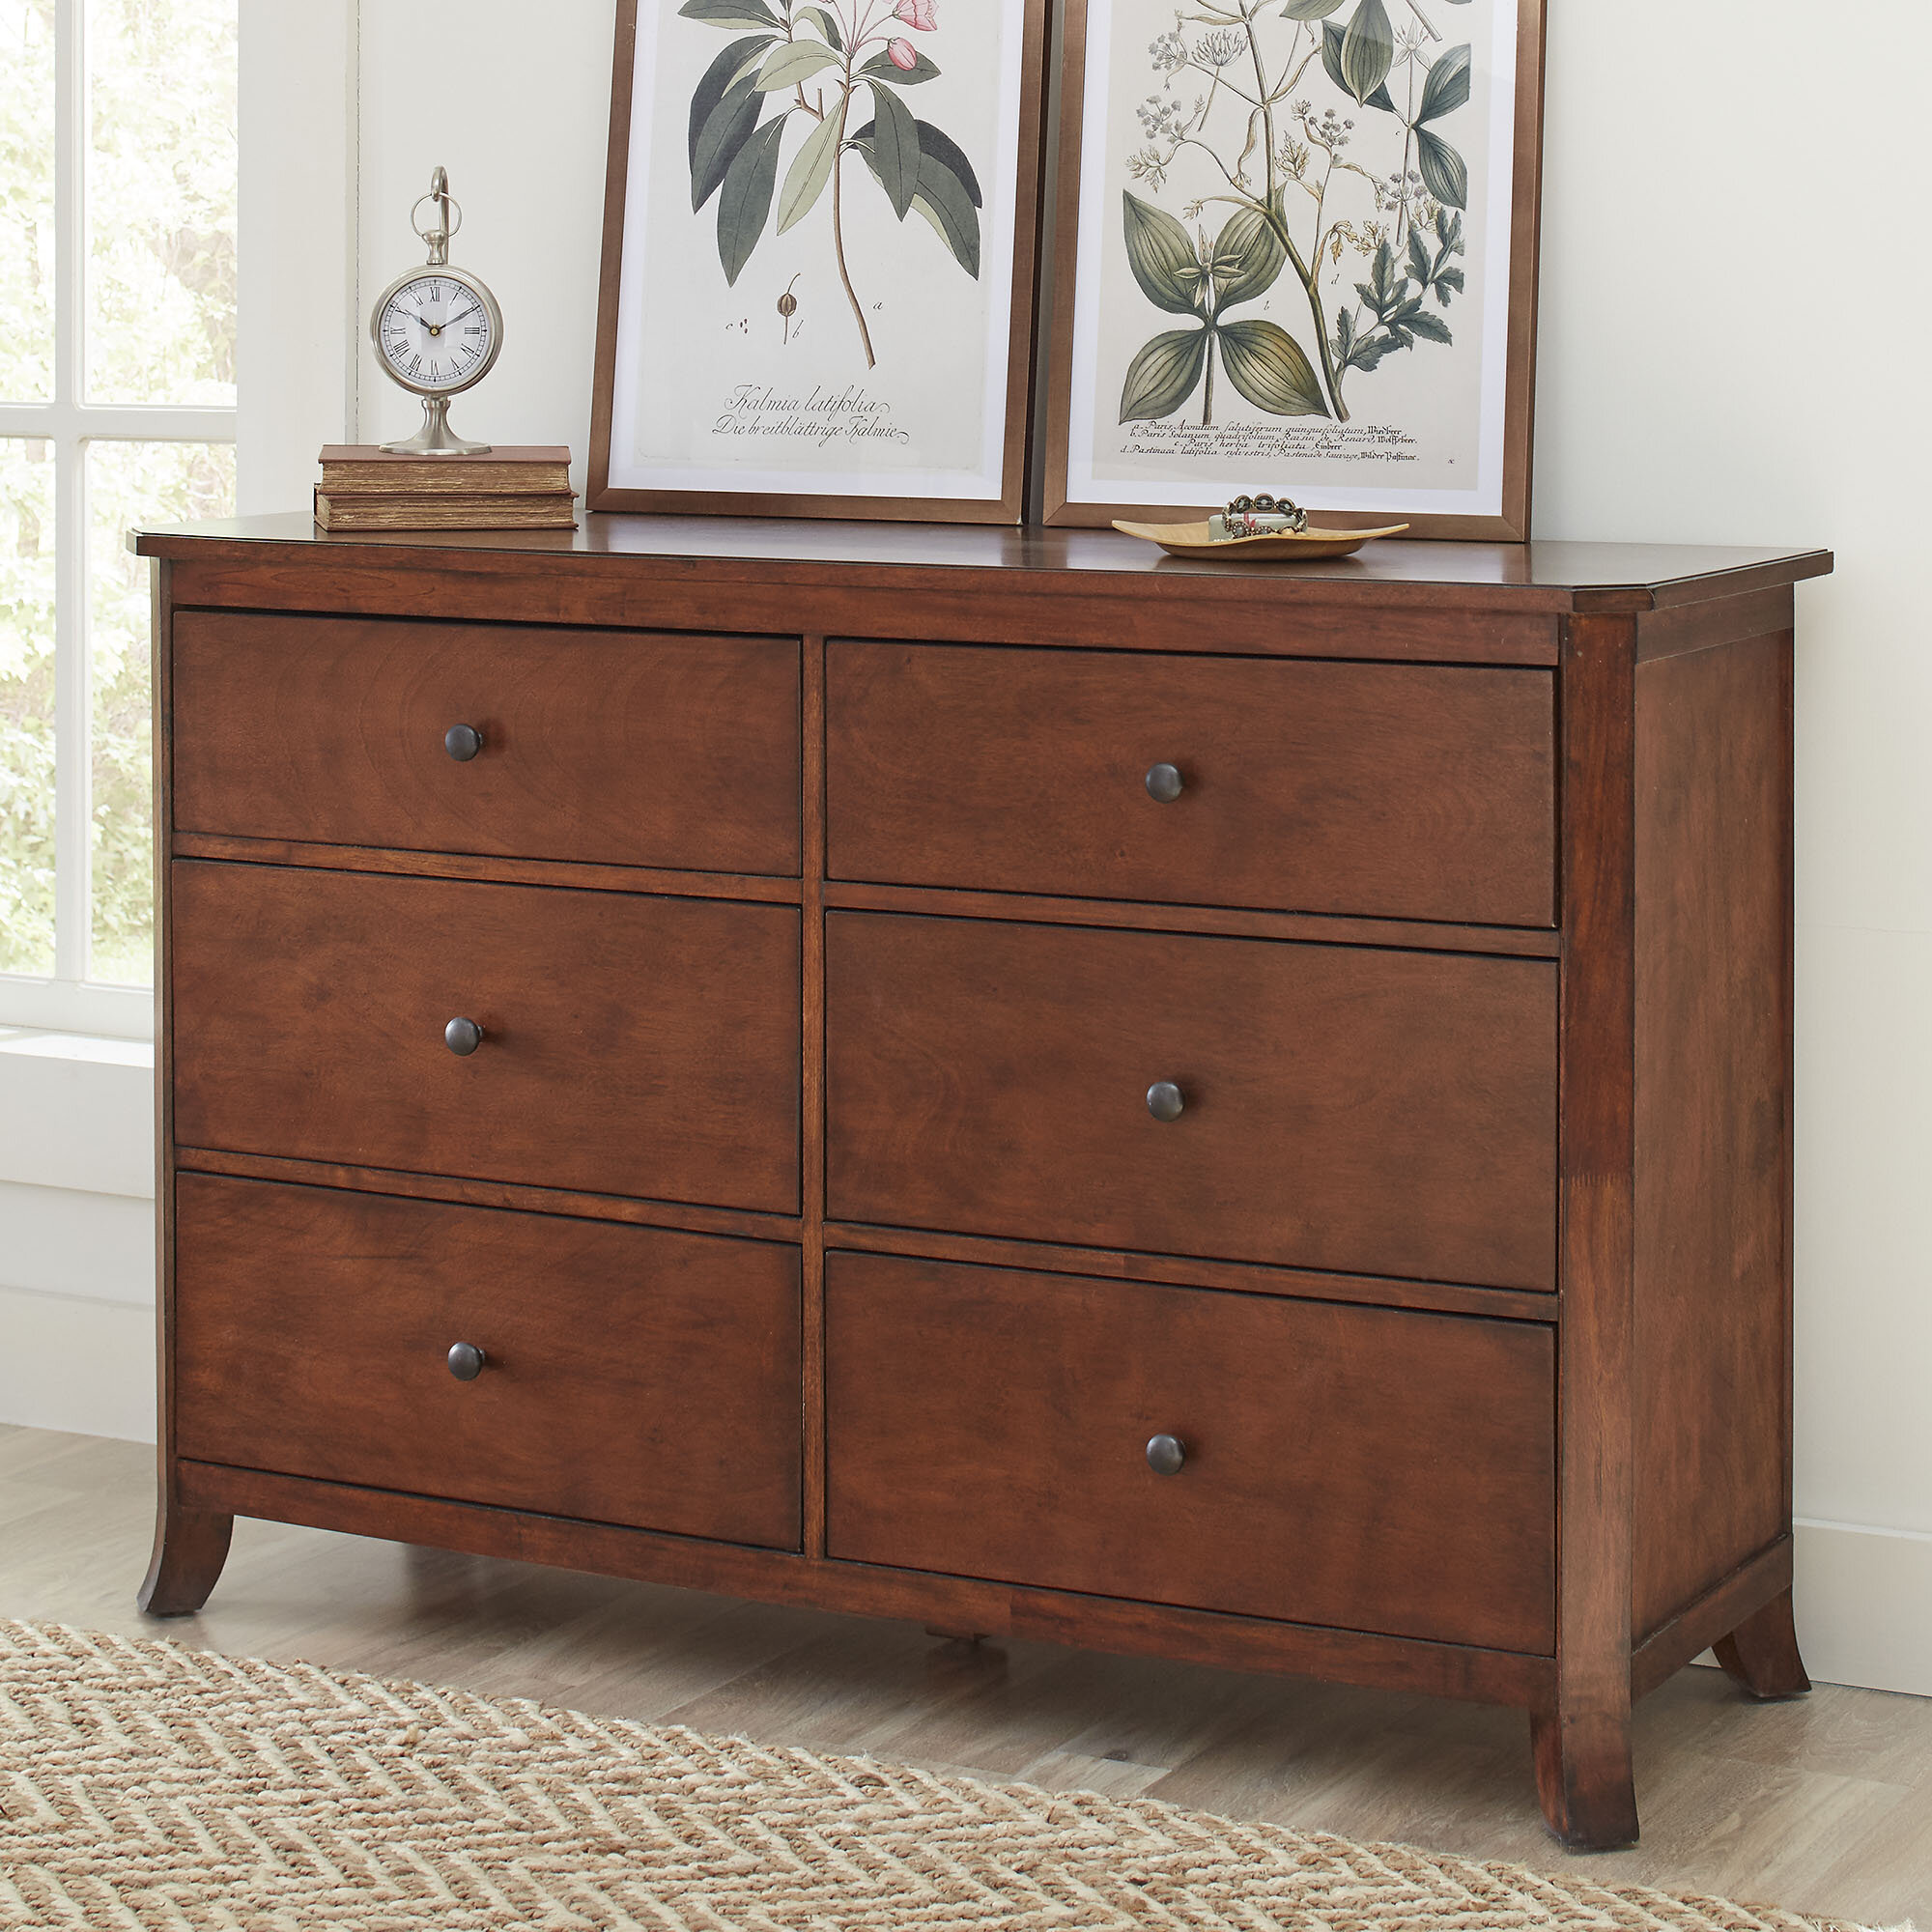 spot dresser assembled on dressers wide click fully enlarge ulm birch to square